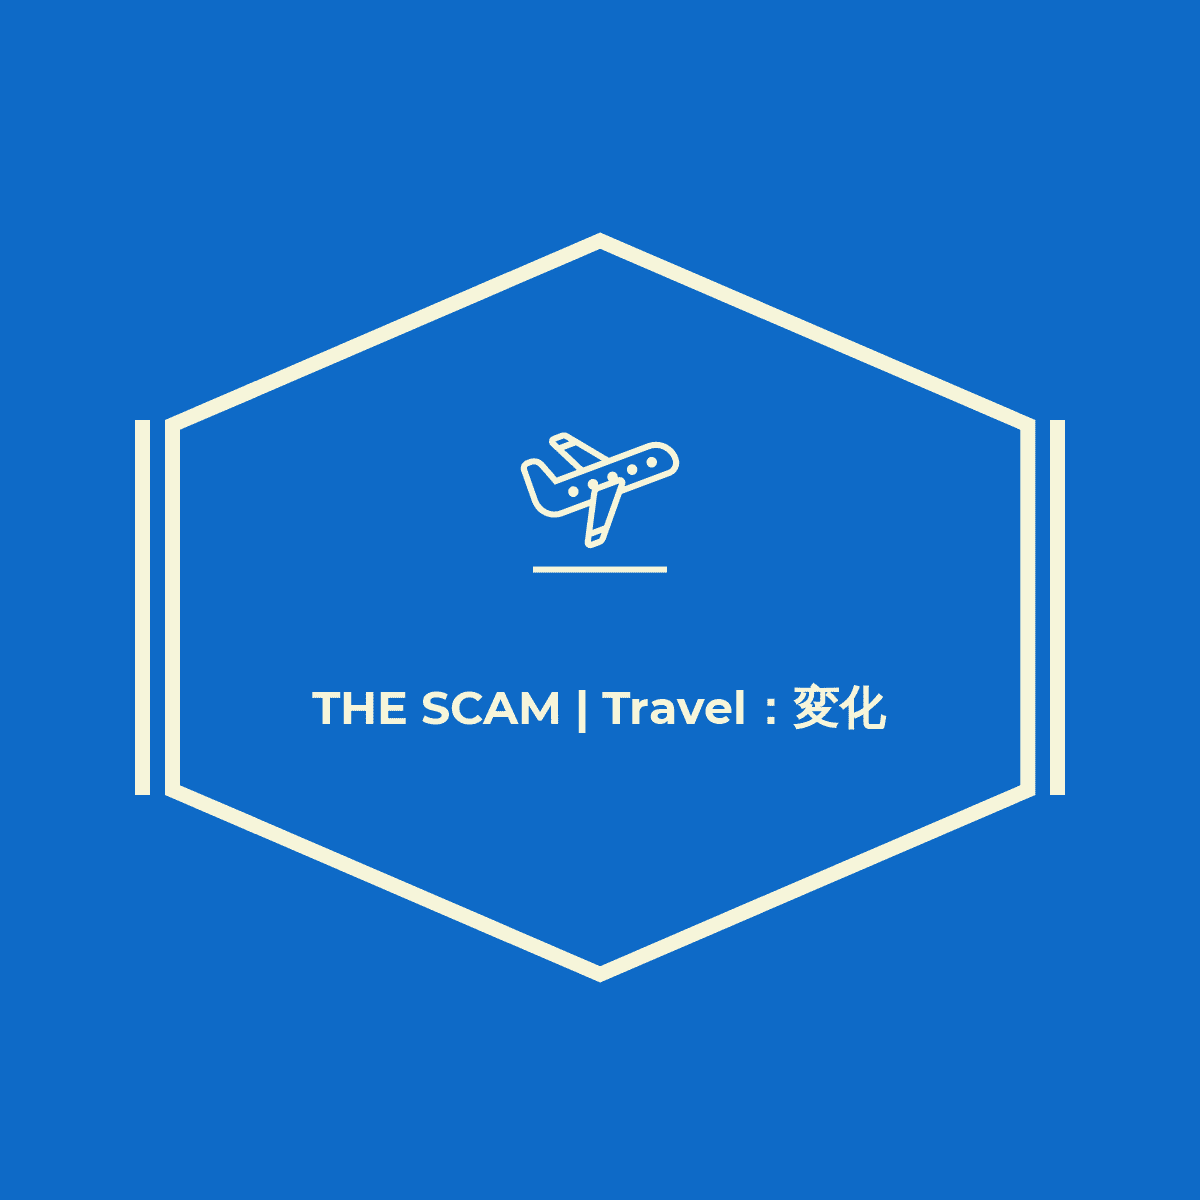 thescam_travel